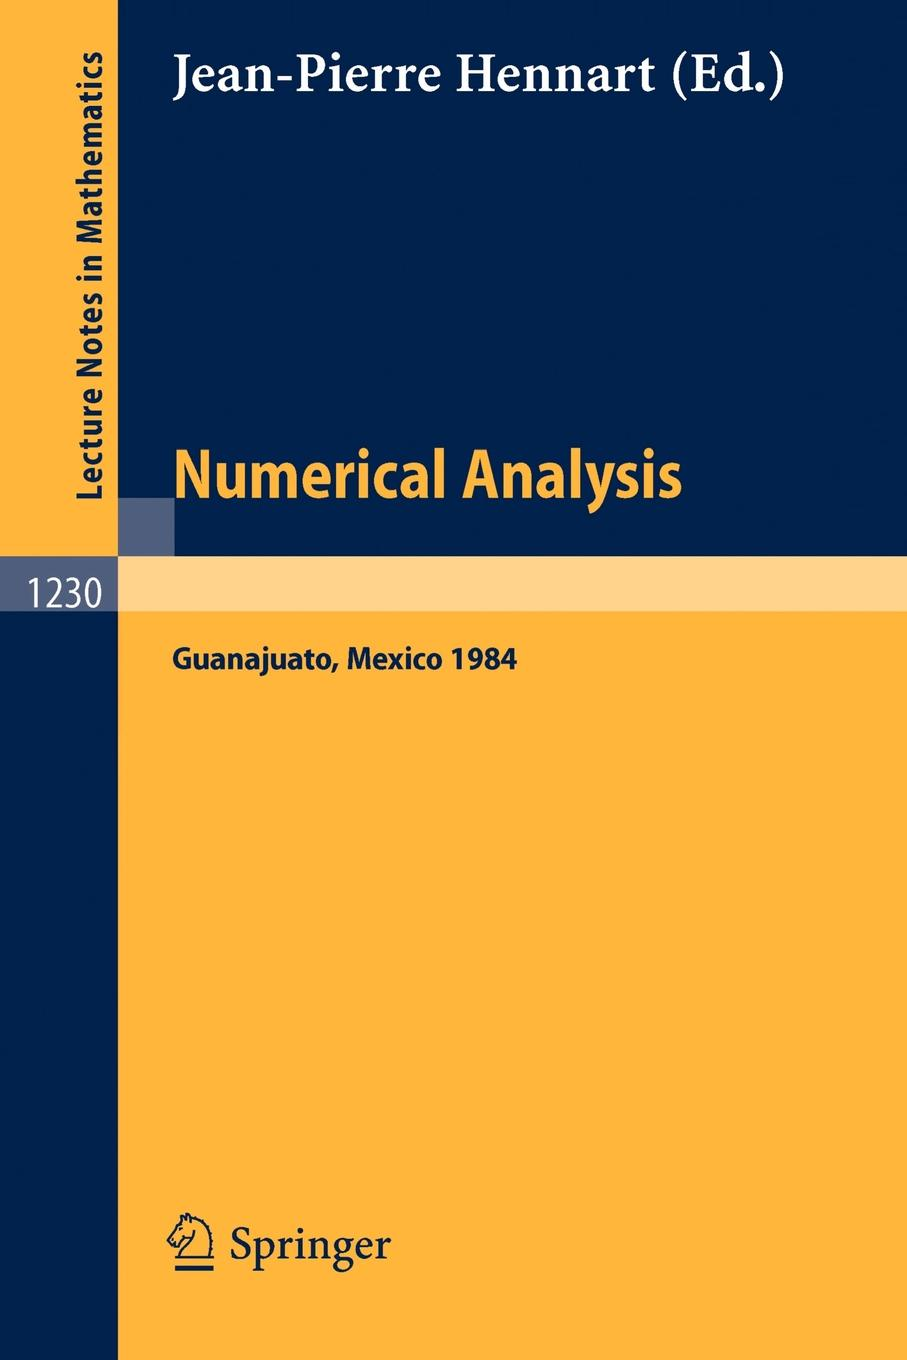 Numerical Analysis. Proceedings of the Fourth IIMAS Workshop held at Guanajuato, Mexico, July 1984 proceedings of the v legislative xml workshop